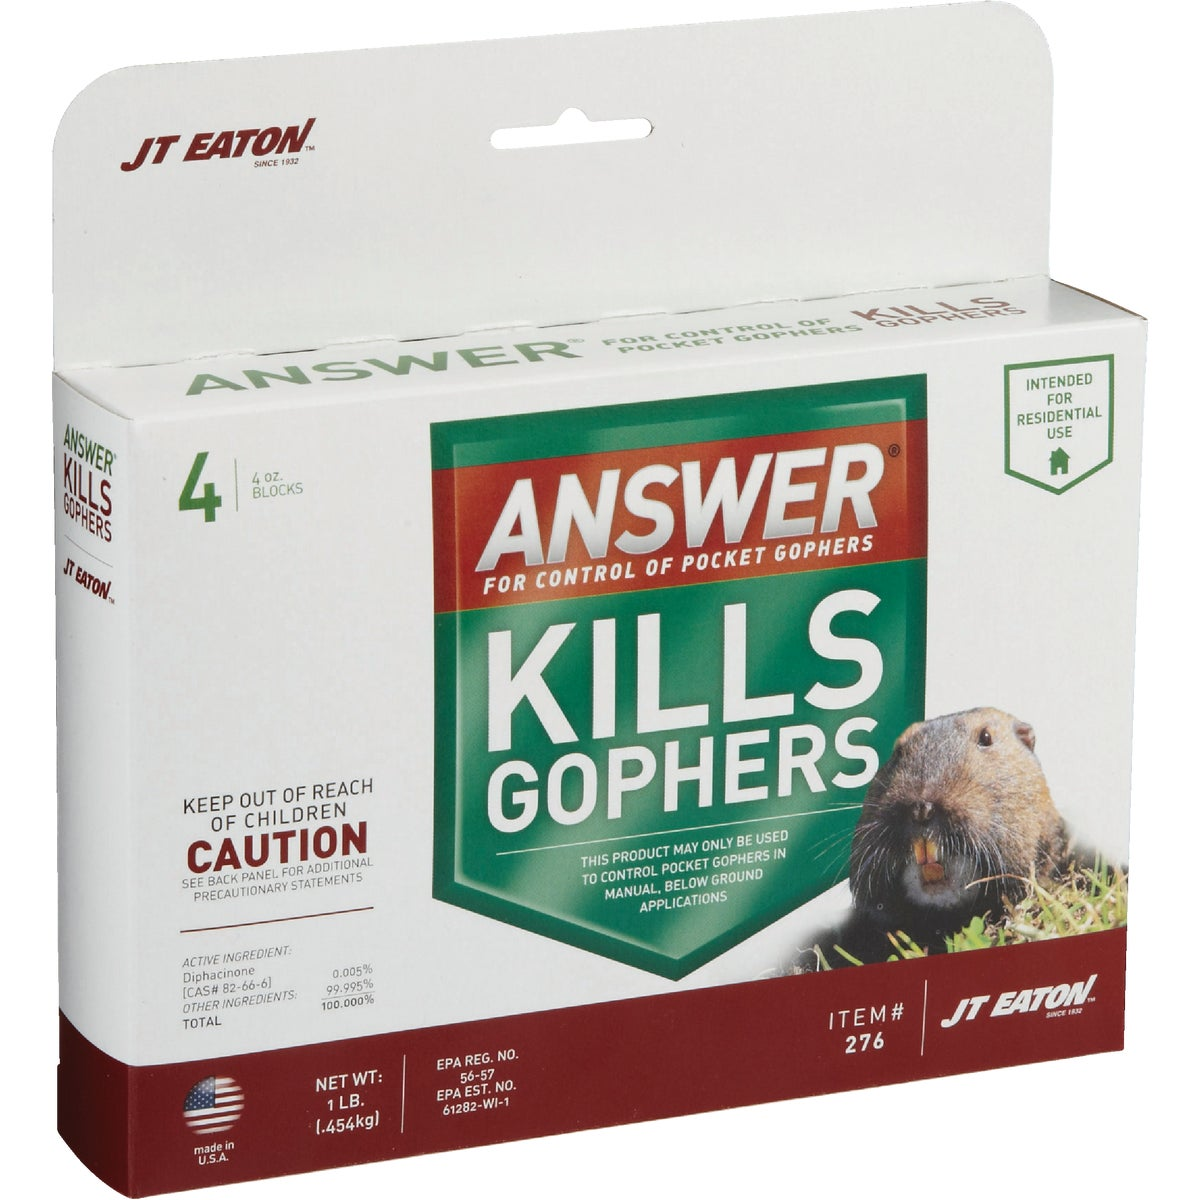 1LB GOPHER CONTROL - 276 by Jt Eaton & Co